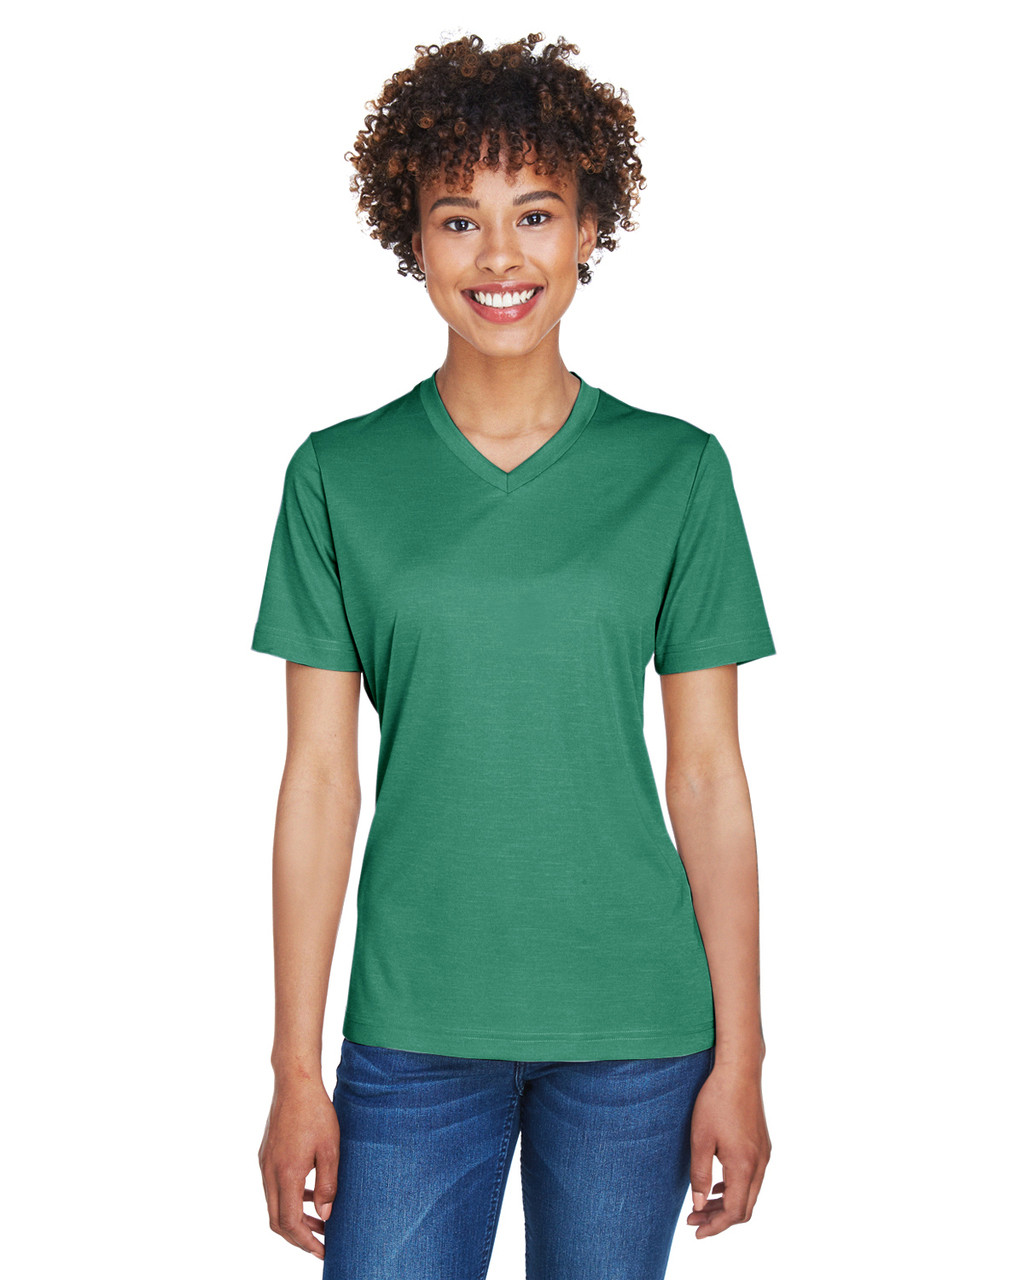 Sport Forest Heather - TT11HW Team 365 Ladies' Sonic Heather Performance T-Shirt | BlankClothing.ca